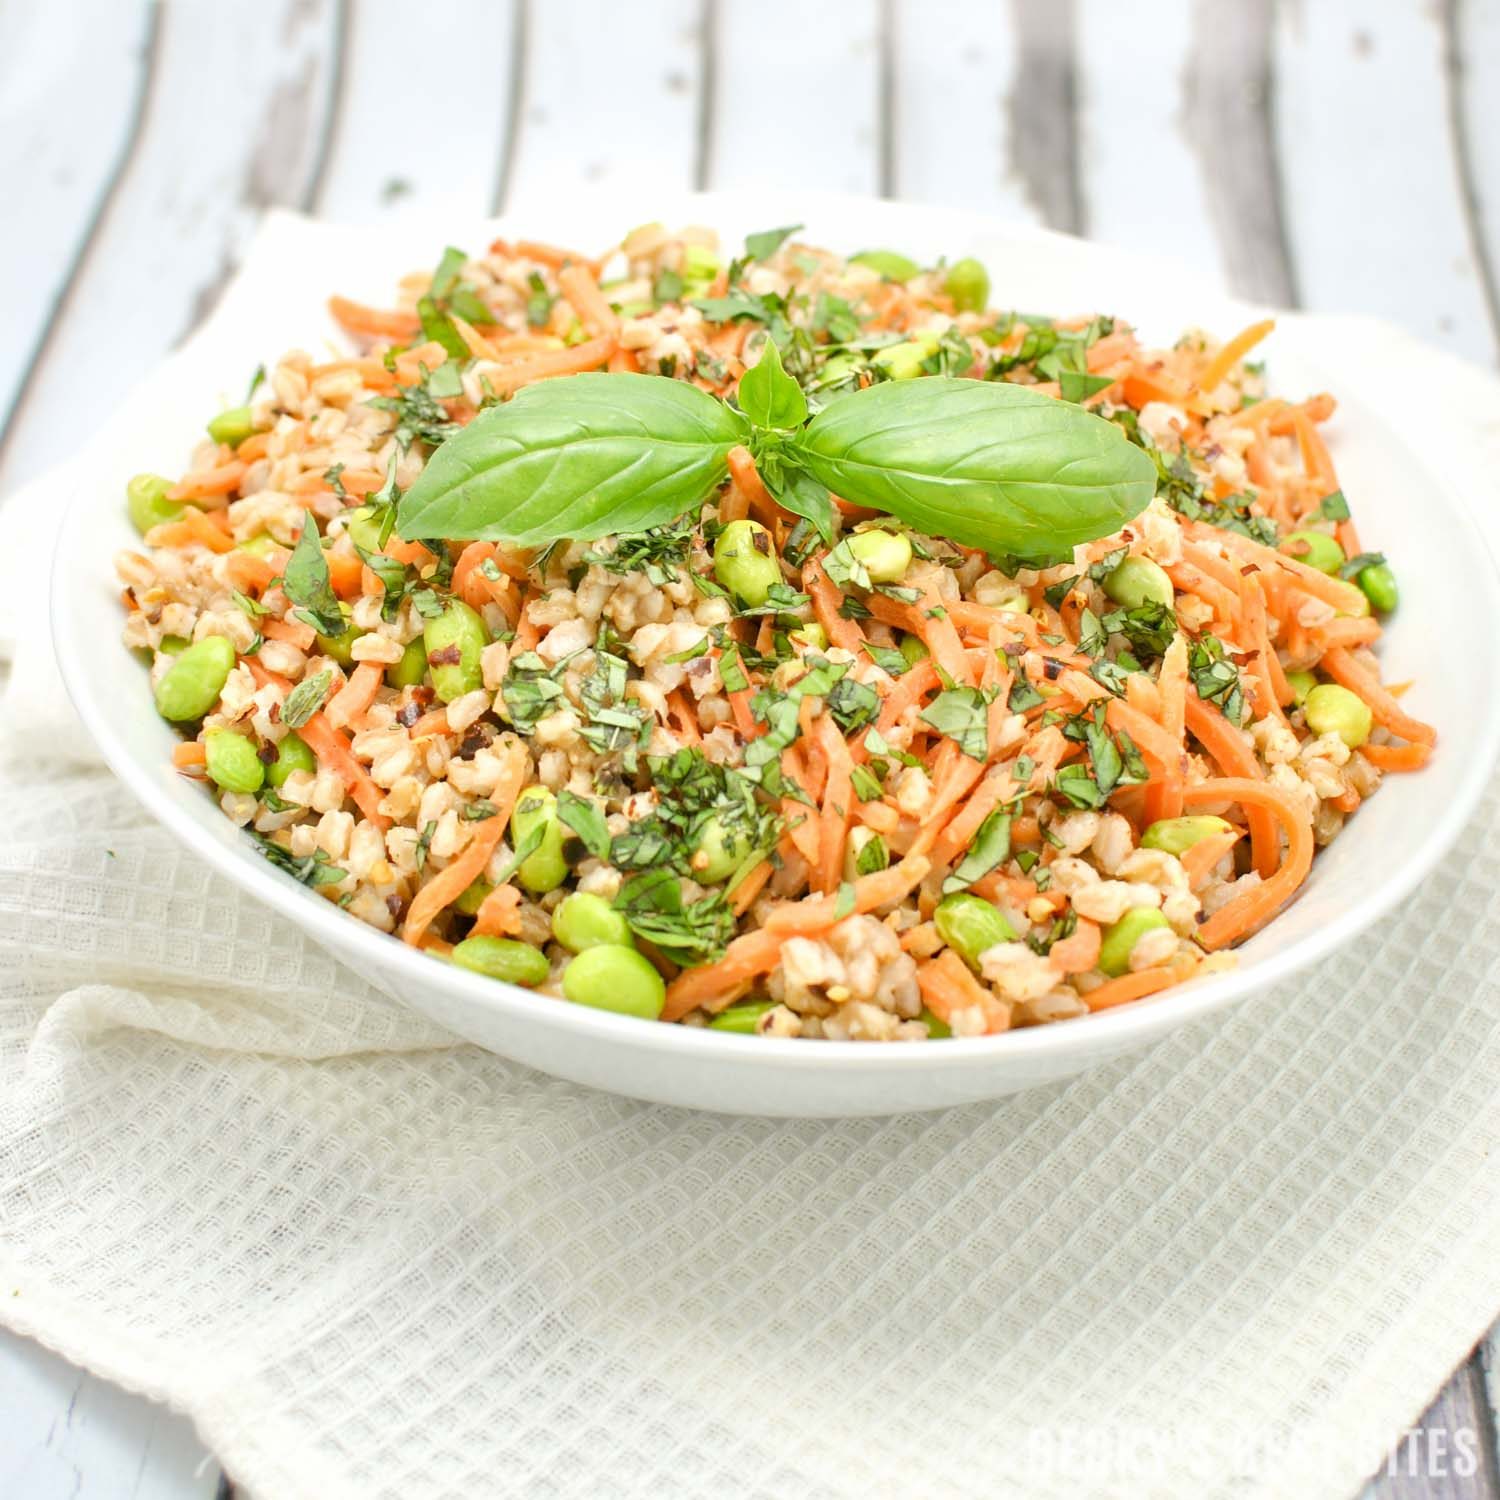 Spicy Farro Salad with Edamame and Carrots is vegan, high protein, high fiber vegetarian main meal or non-vegetarian side dish perfect for Spring/Summer   beckysbestbites.com